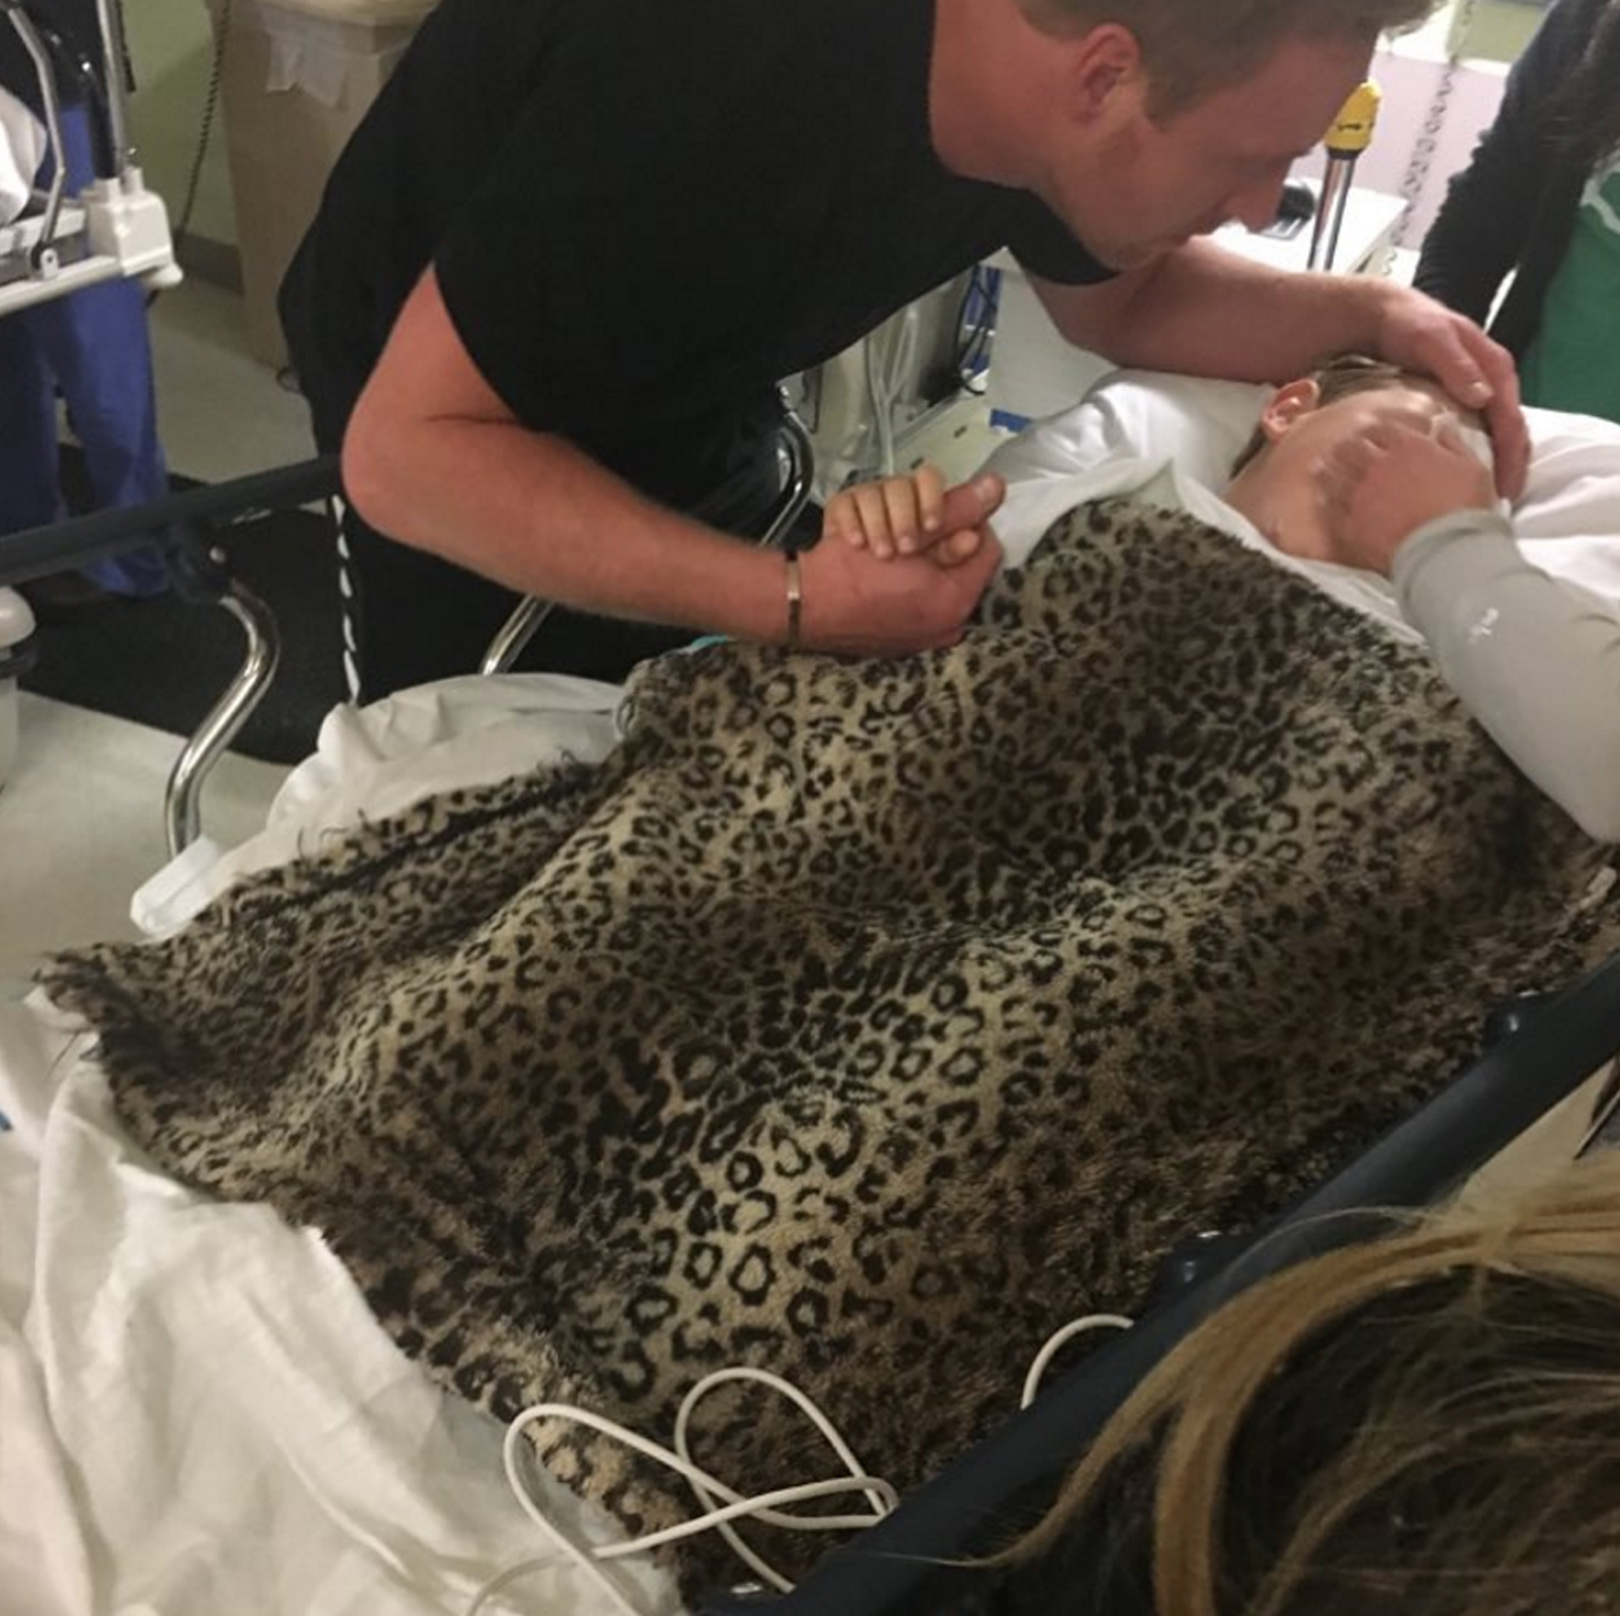 Kim Zolciak: Her 4-Year-Old Son Suffers Vicious Dog Attack